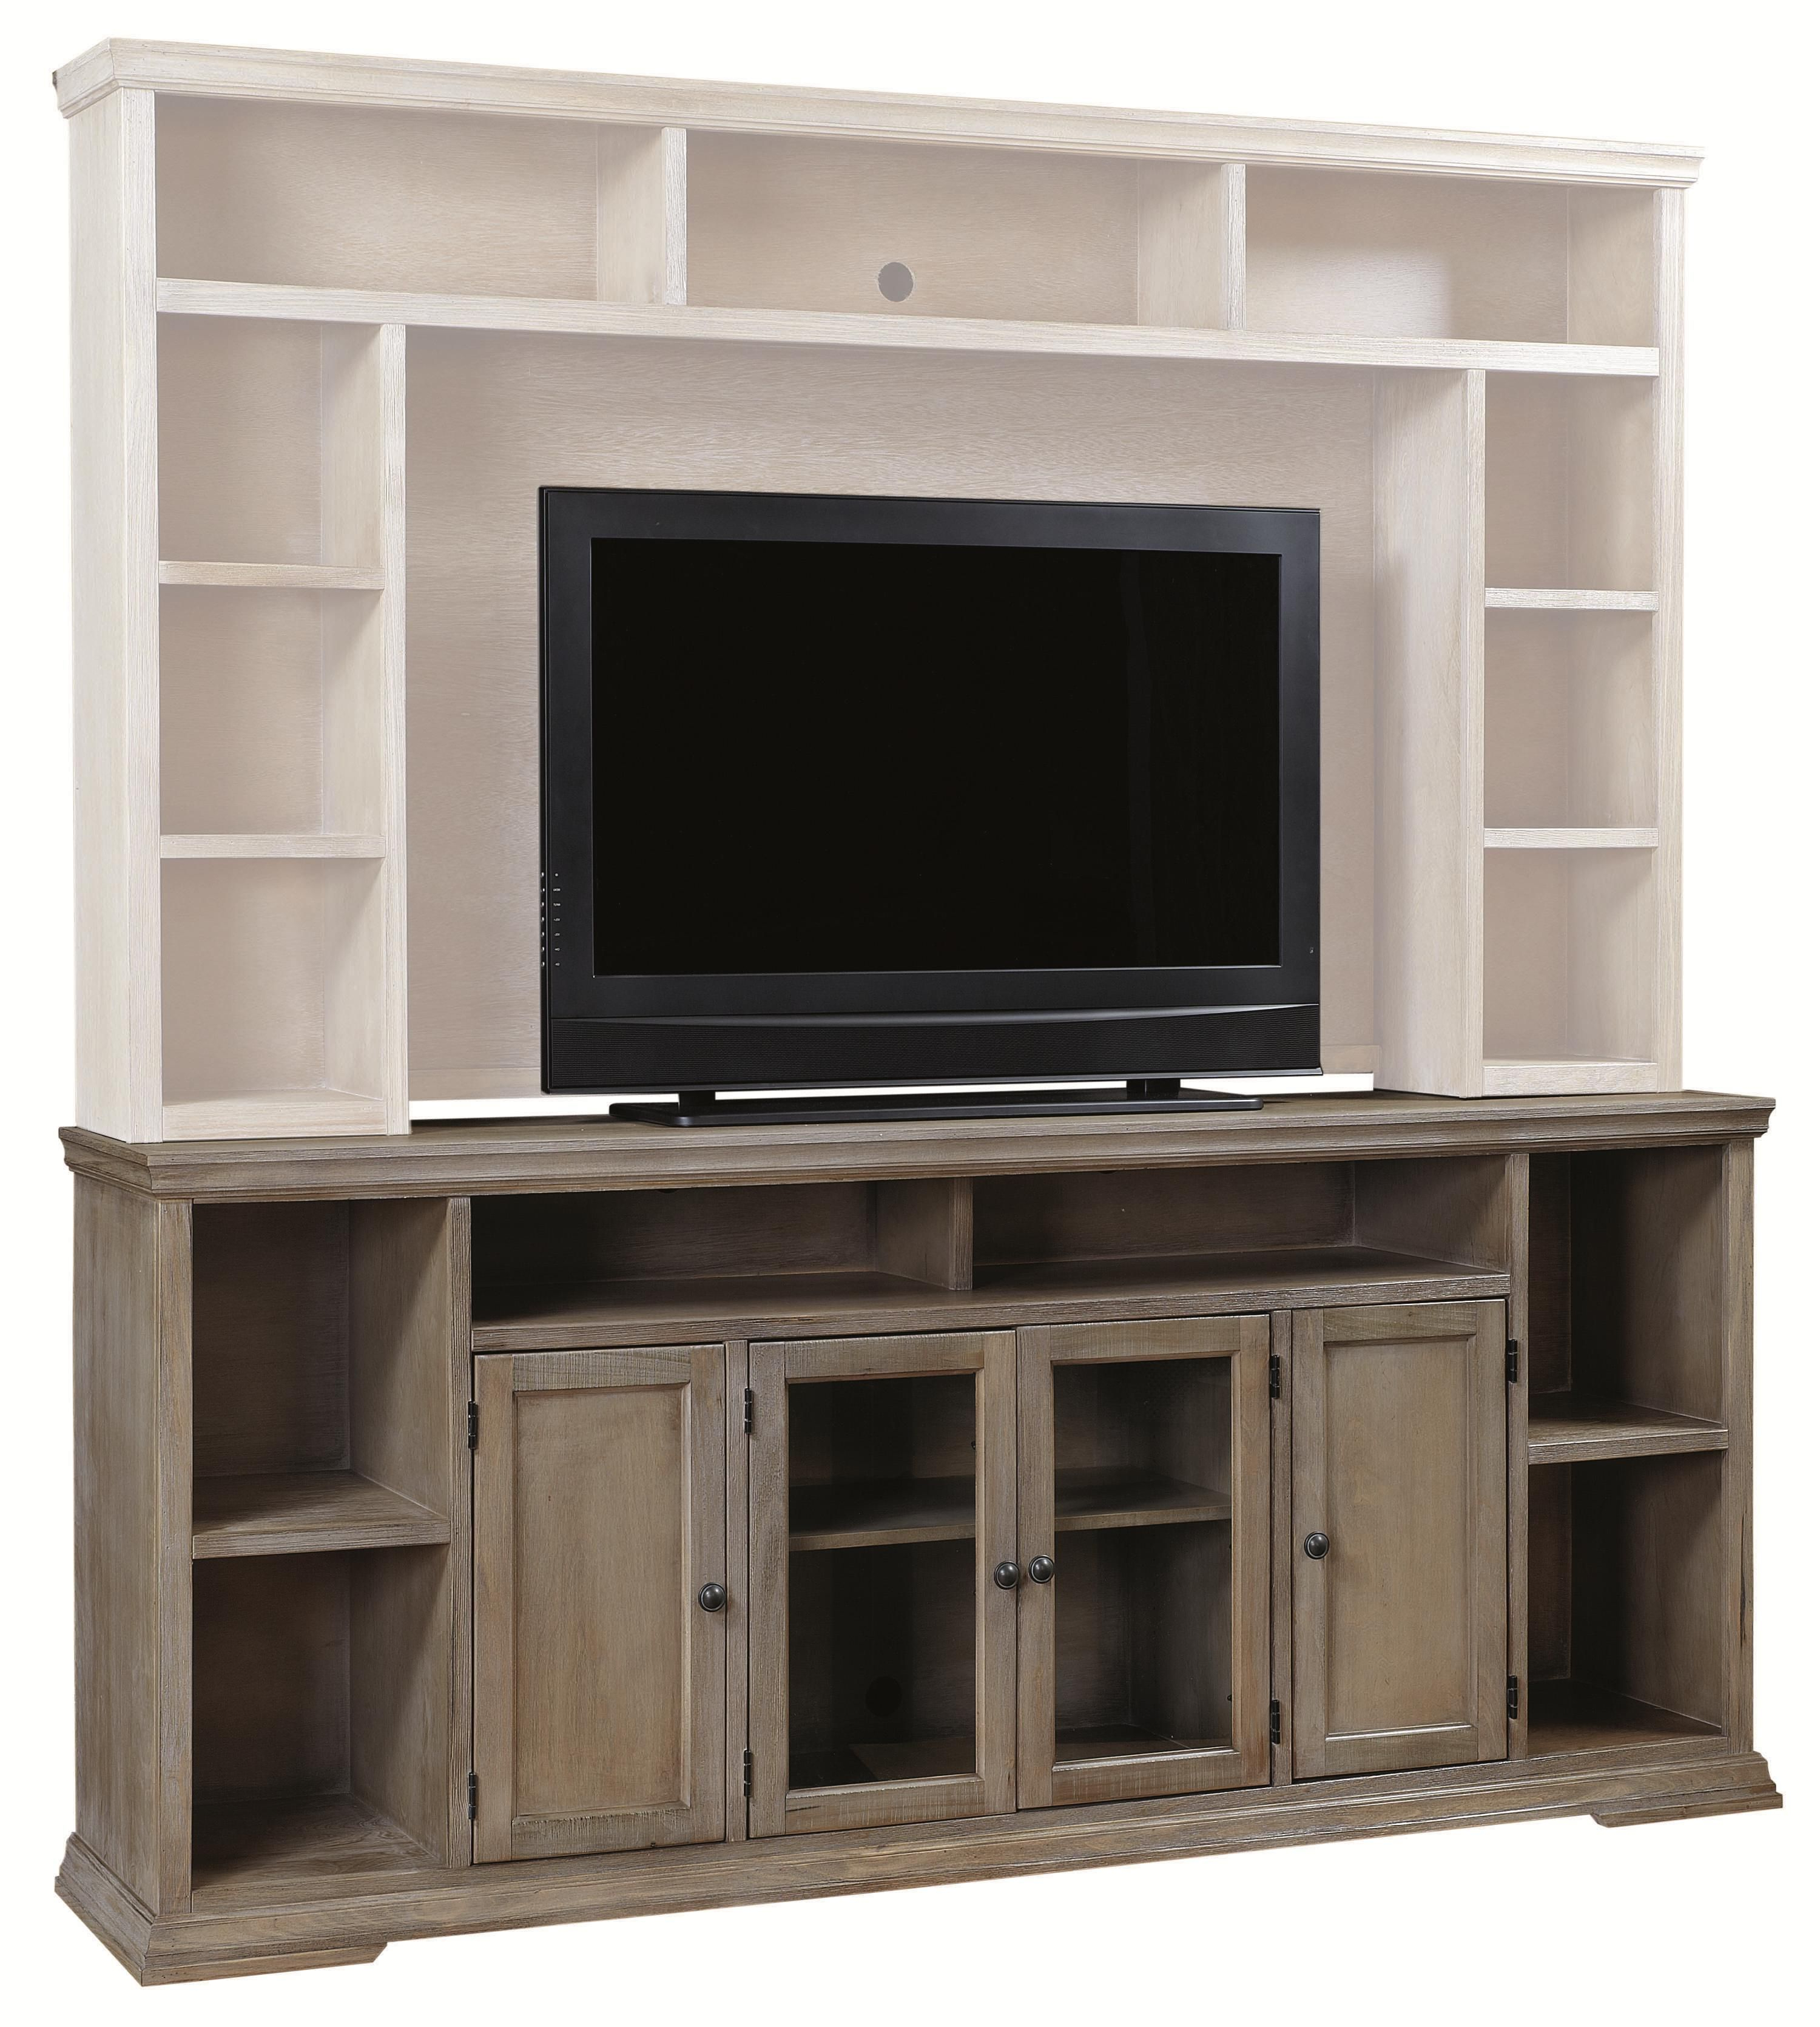 Canyon Creek 84 Inch Tv Console With 4 Doors And Open Shelf Storage In Fashionable Canyon 54 Inch Tv Stands (View 19 of 20)